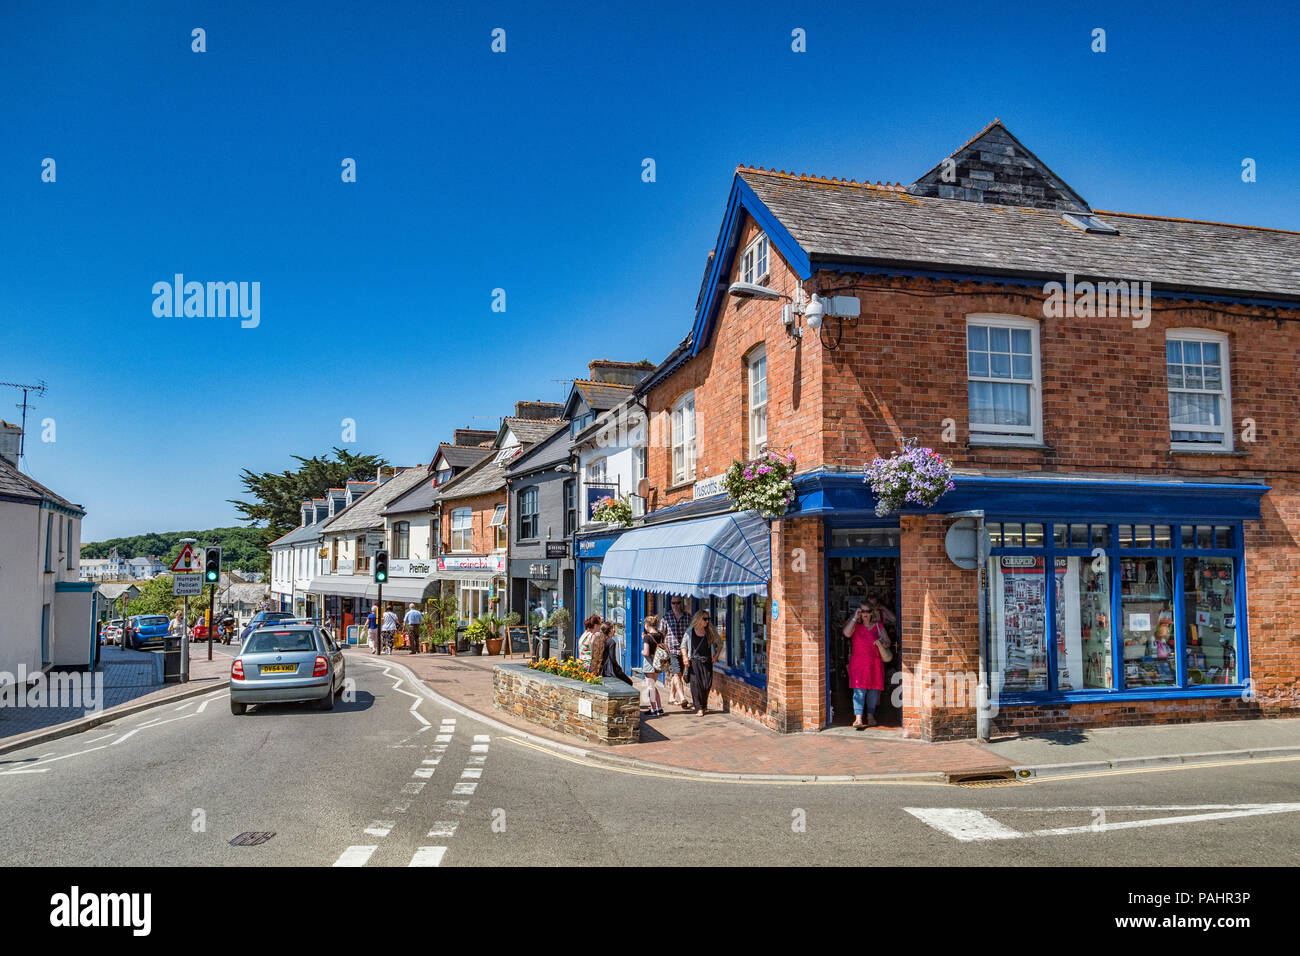 7 July 2018: Bude, Cornwall, UK - Shopping in Lansdown Road, Bude, Cornwall, UK - Stock Image